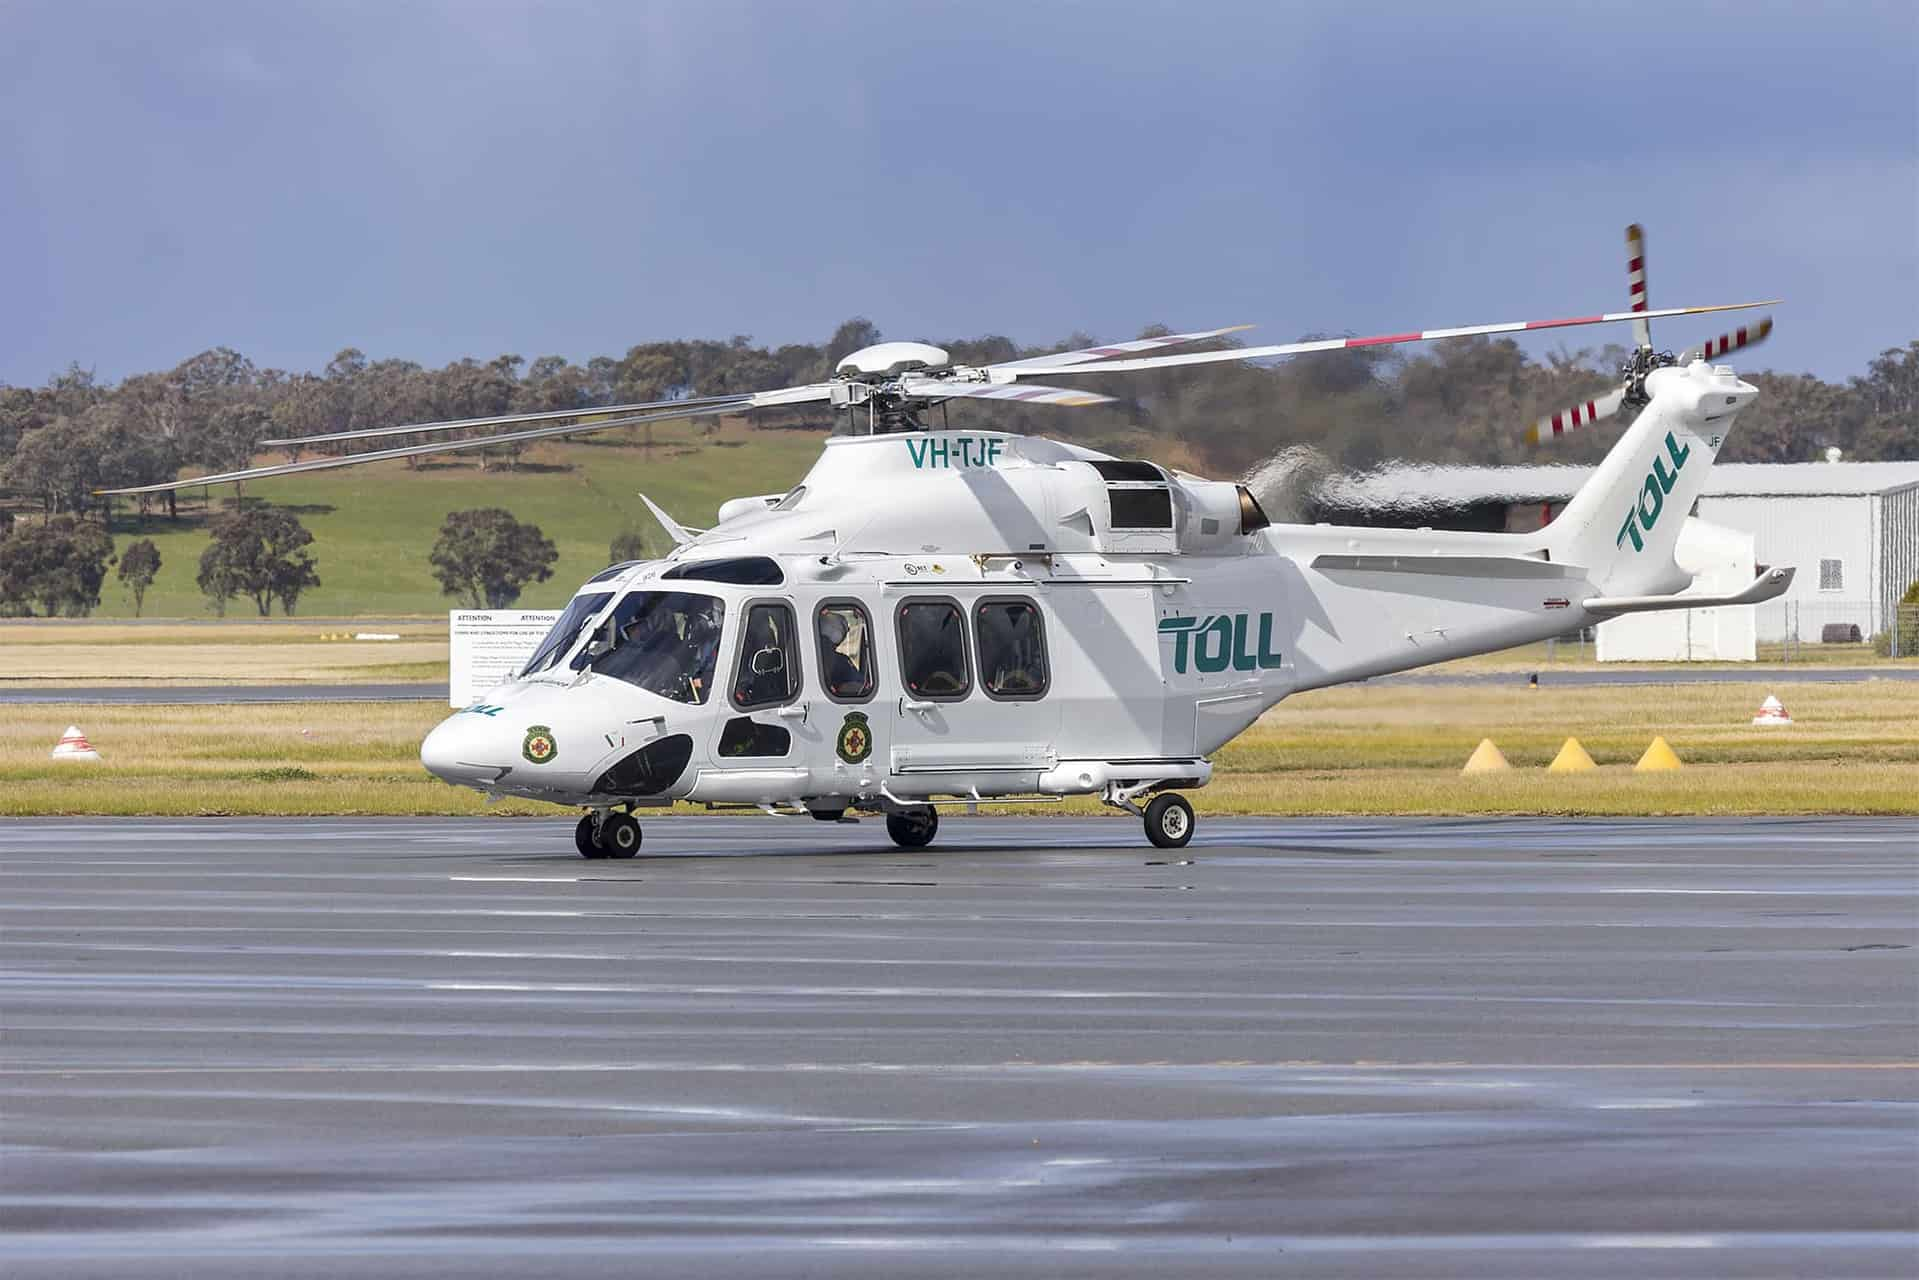 AgustaWestland AW139 Price Specs Cost Photos